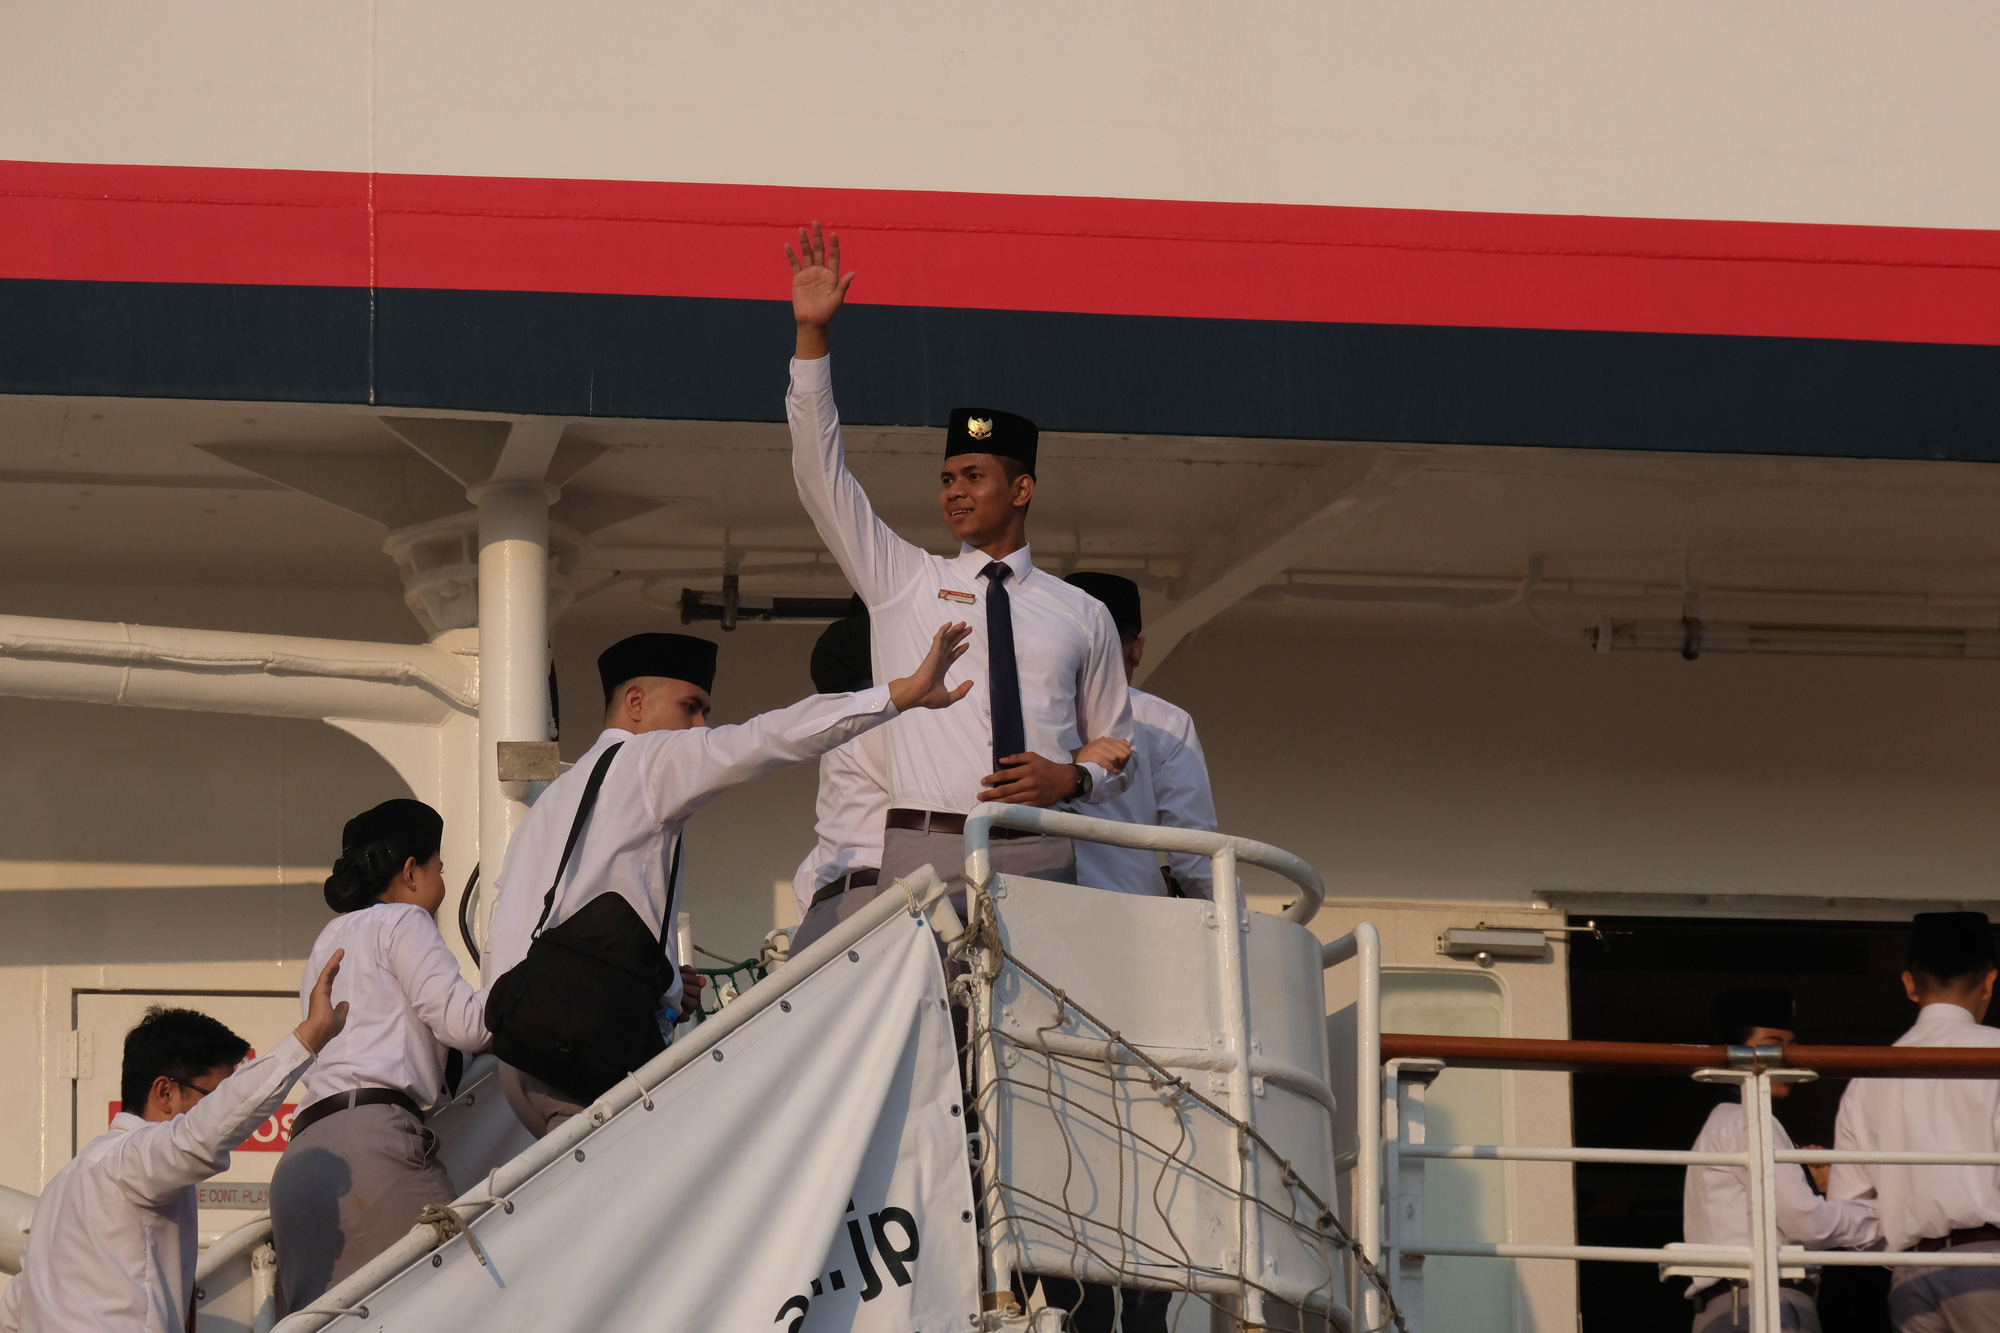 SSEAYP 2019 ambassadors wave as they embark the Nippon Maru ship after the program's farewell ceremony in Ho Chi Minh City on November 13, 2019. Photo: Vu Thuy / Tuoi Tre